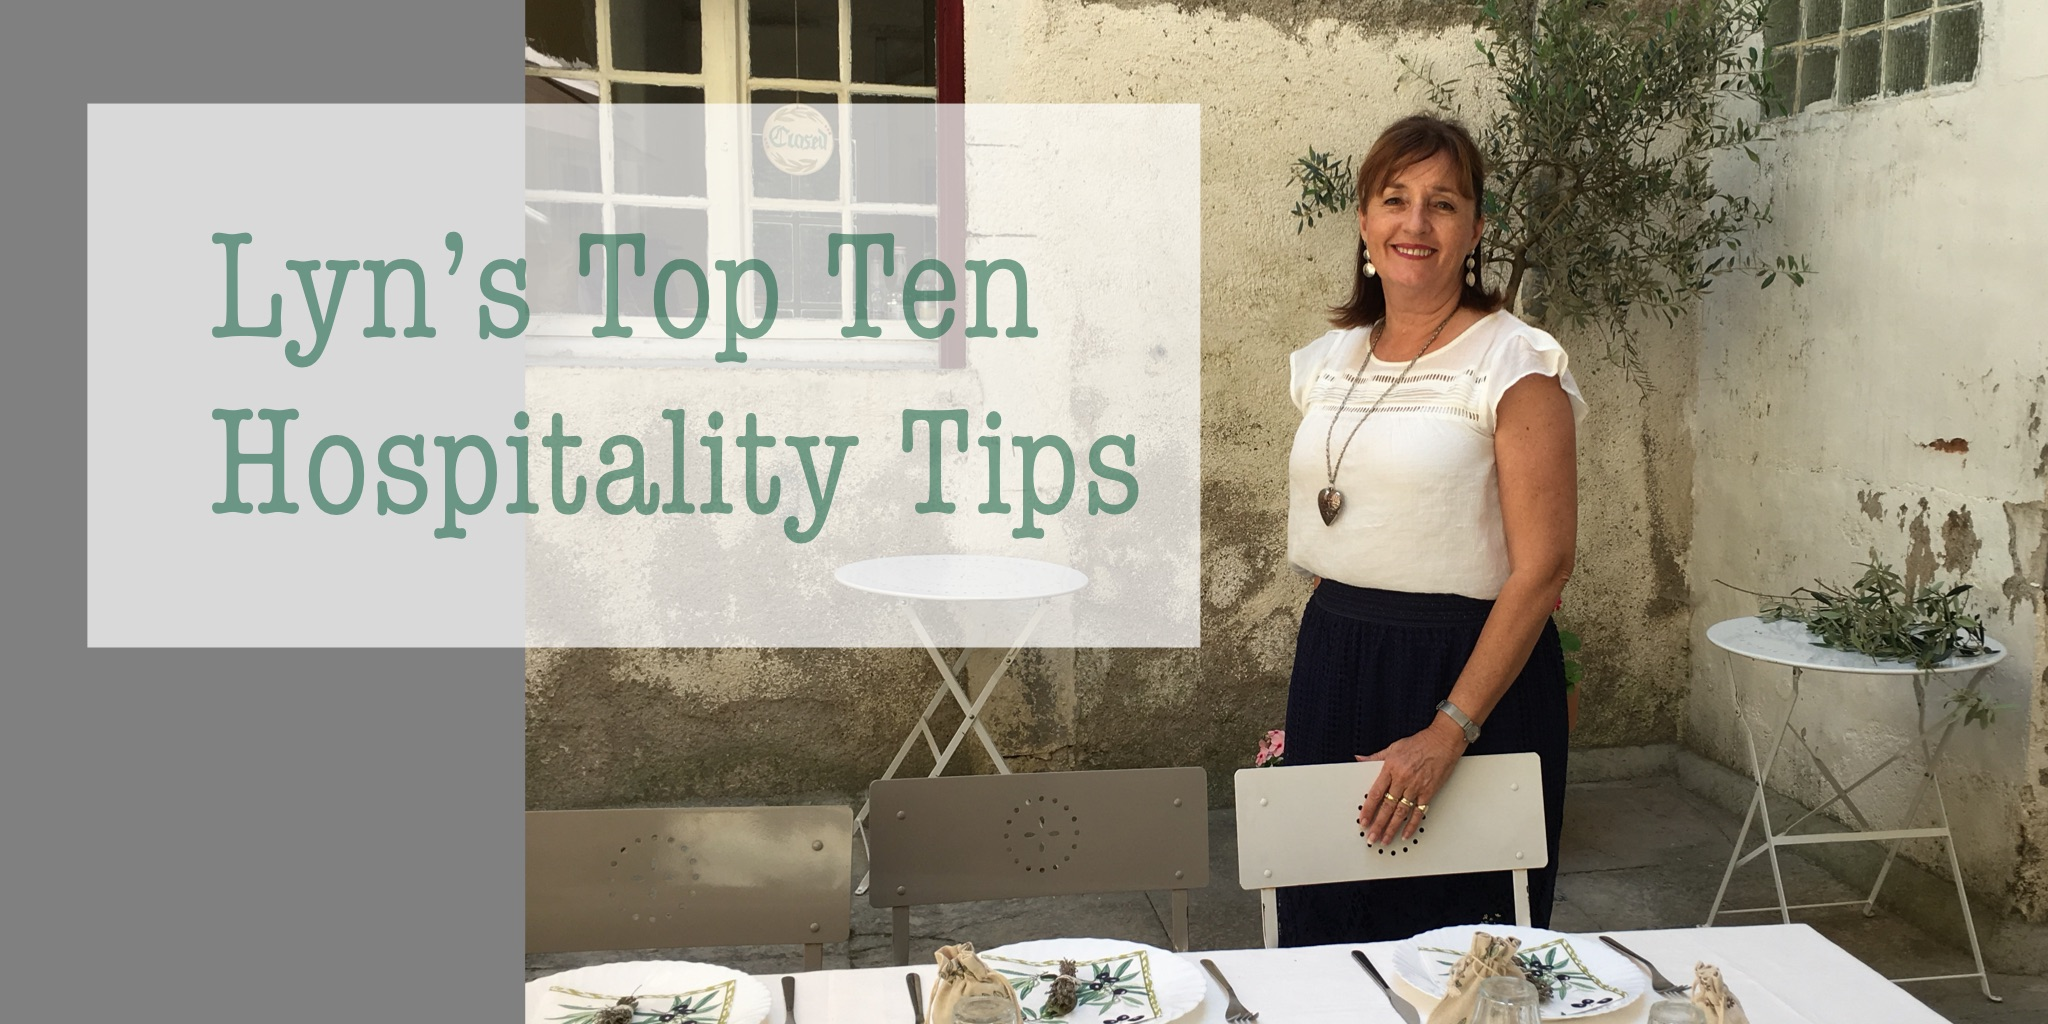 Lyn's Top Ten Hospitality Tips